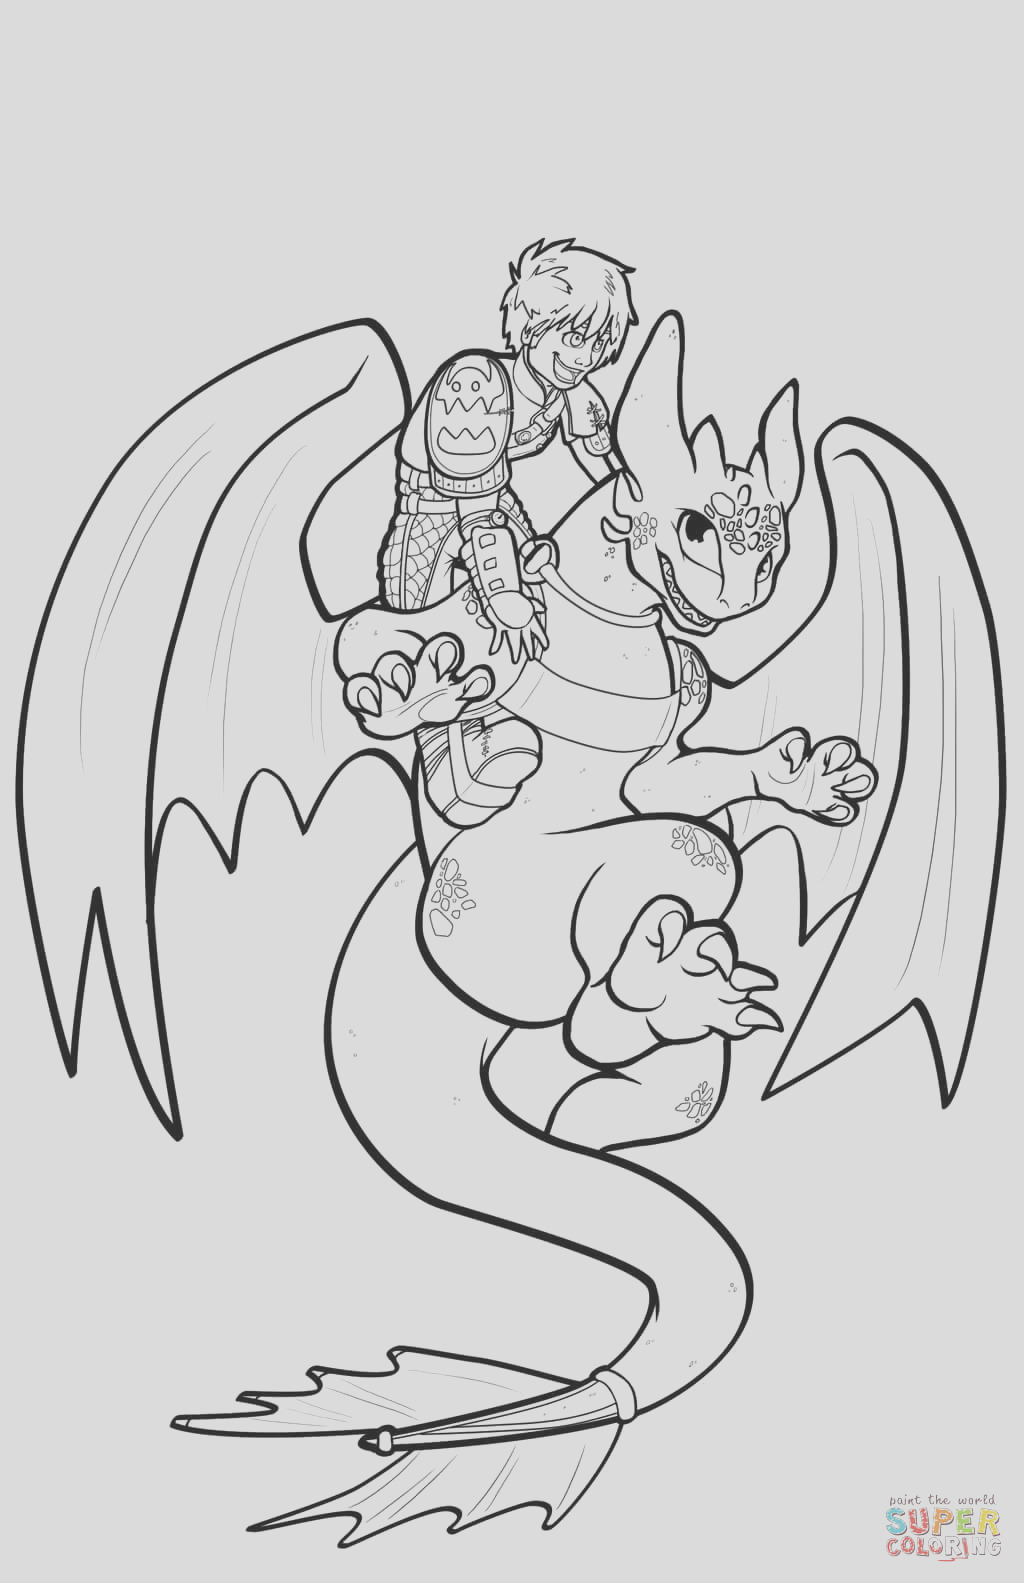 toothless sketch templates